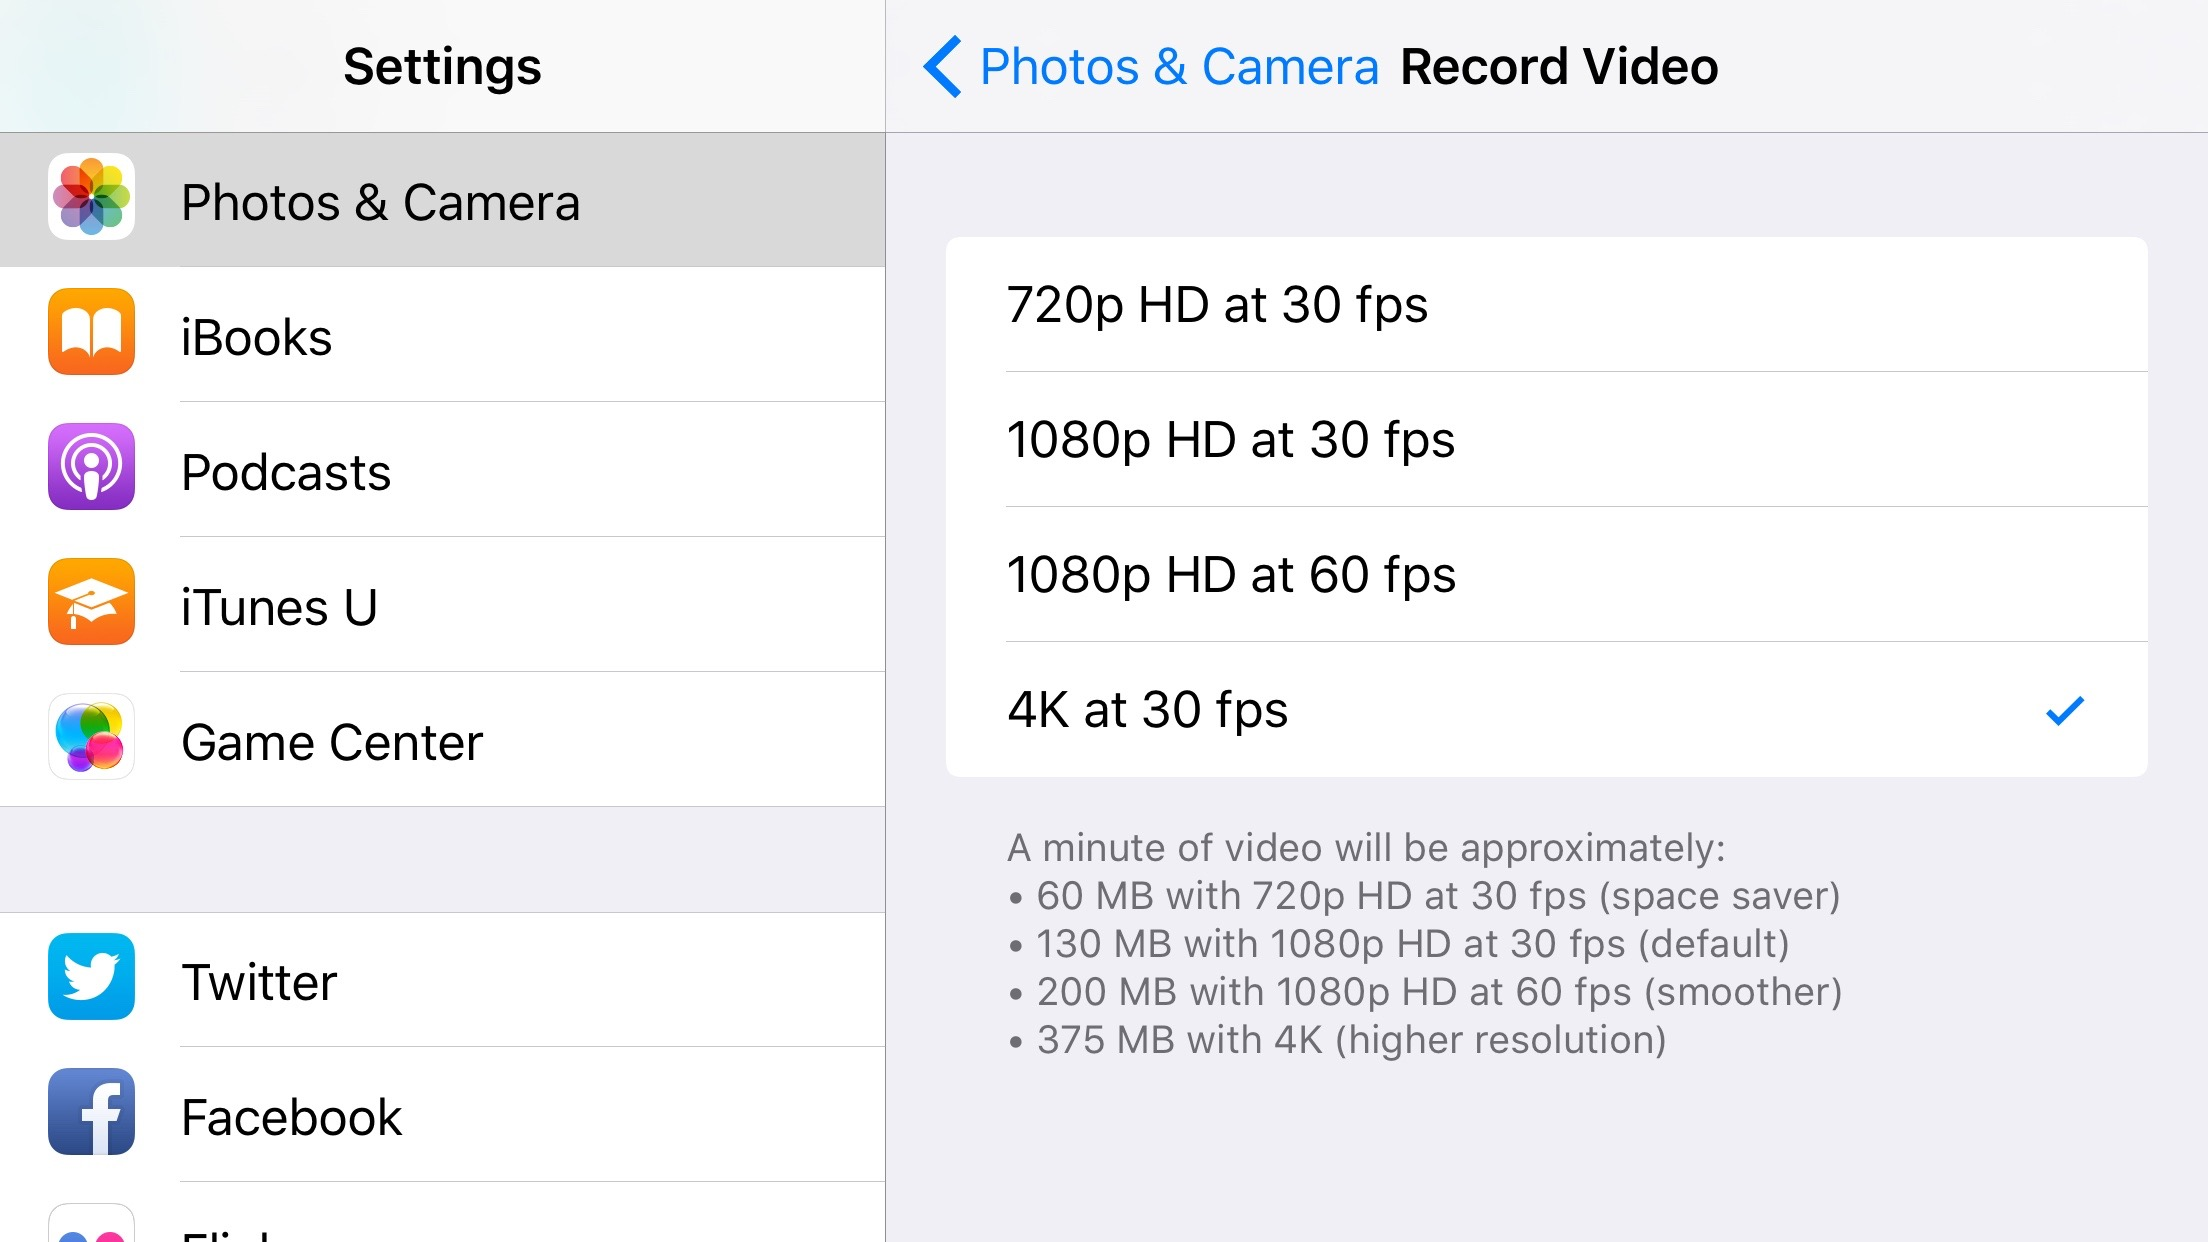 iPhone 6s Plus video settings